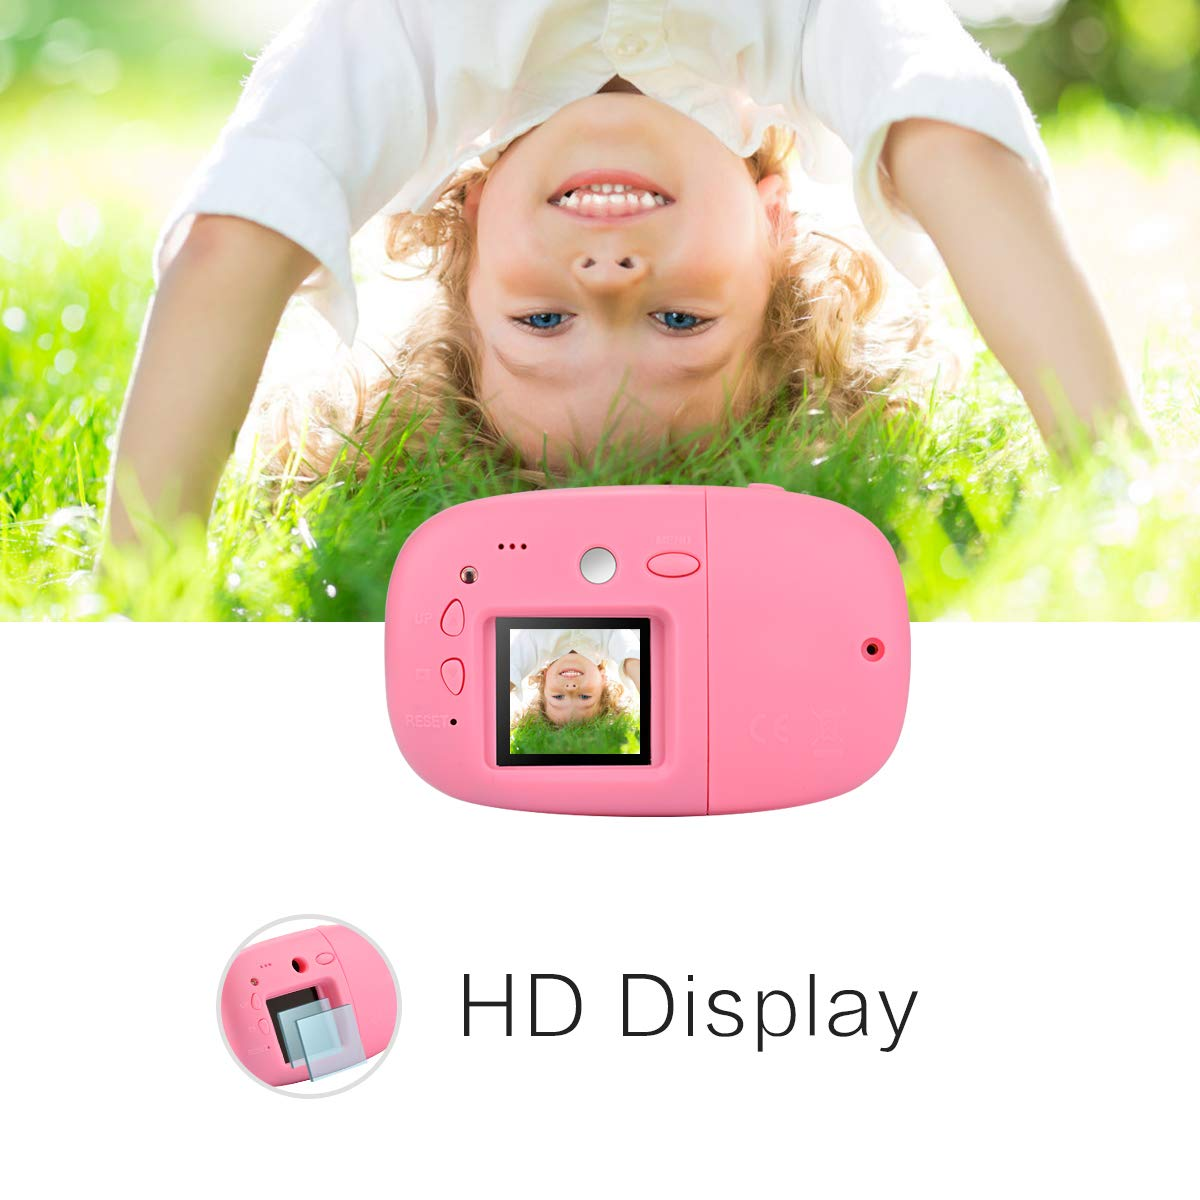 Weton Kids Digital Camera, 1.44 inch Digital Video Camera Creative DIY Camera for Kids with Soft Silicone Protective Shell 1080P HD Sport Learn Mini Camera Camcorder for Boys Girls Gifts (Pink) by Weton (Image #5)